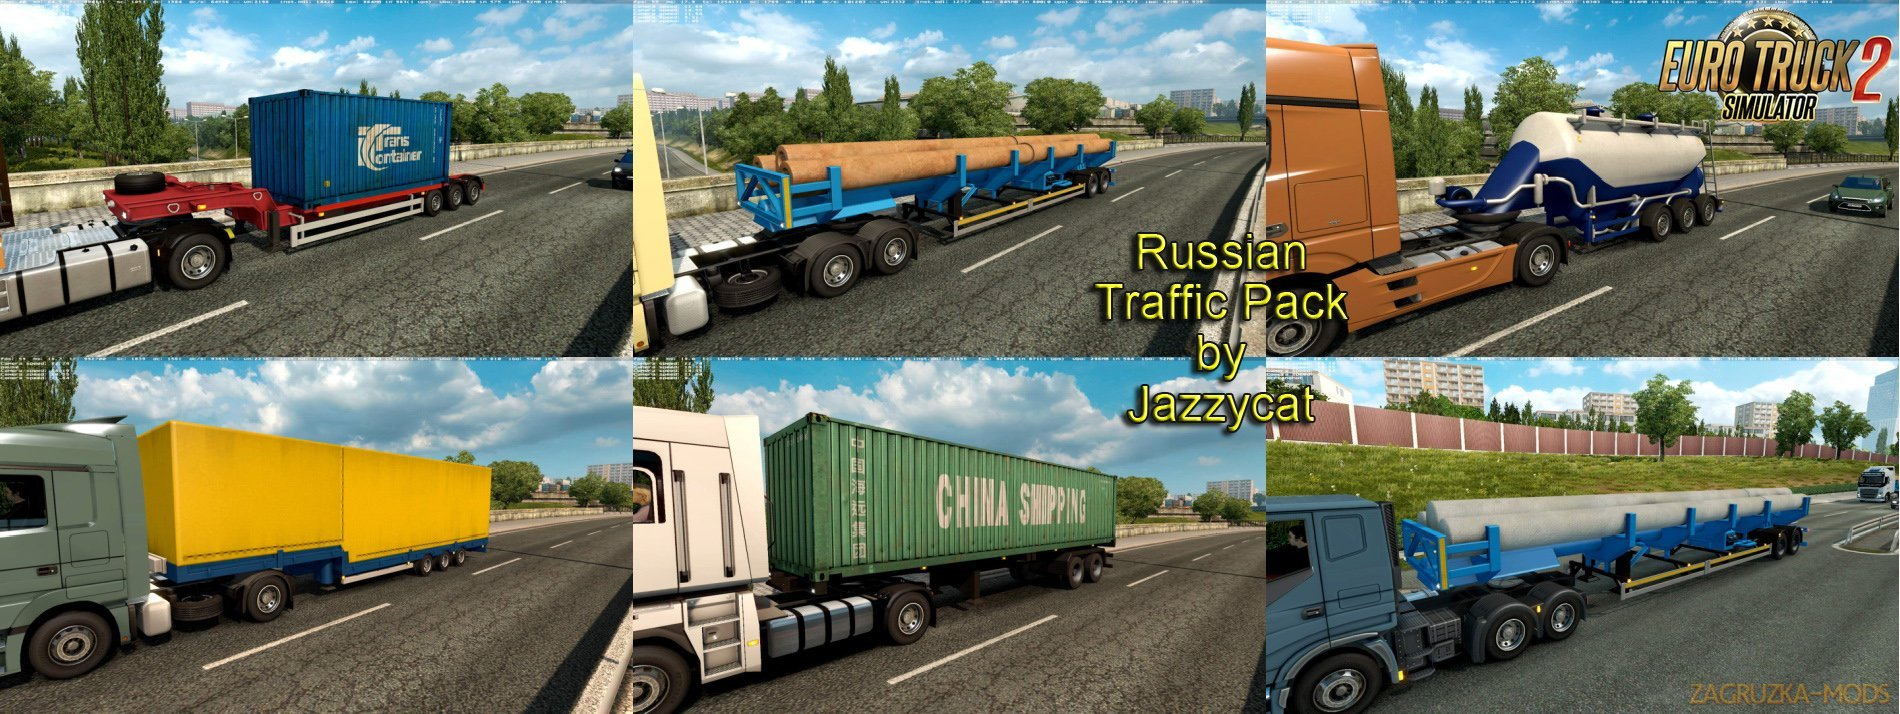 Russian Traffic Pack v2.3 by Jazzycat